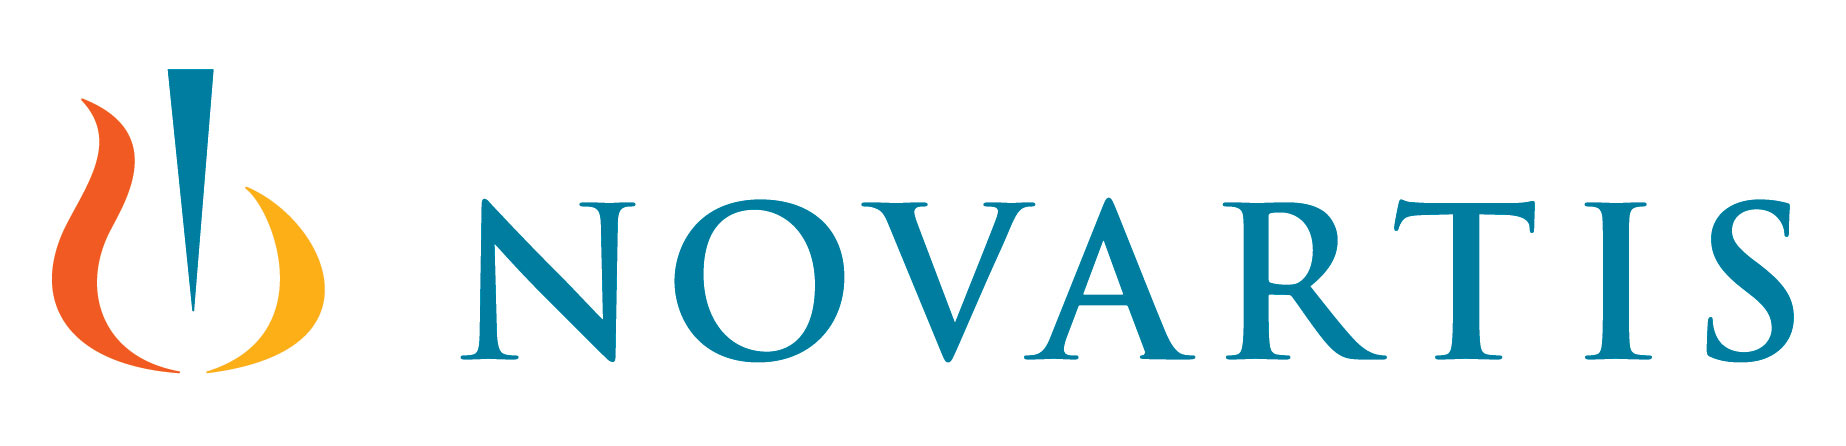 Novartis - Women of Action